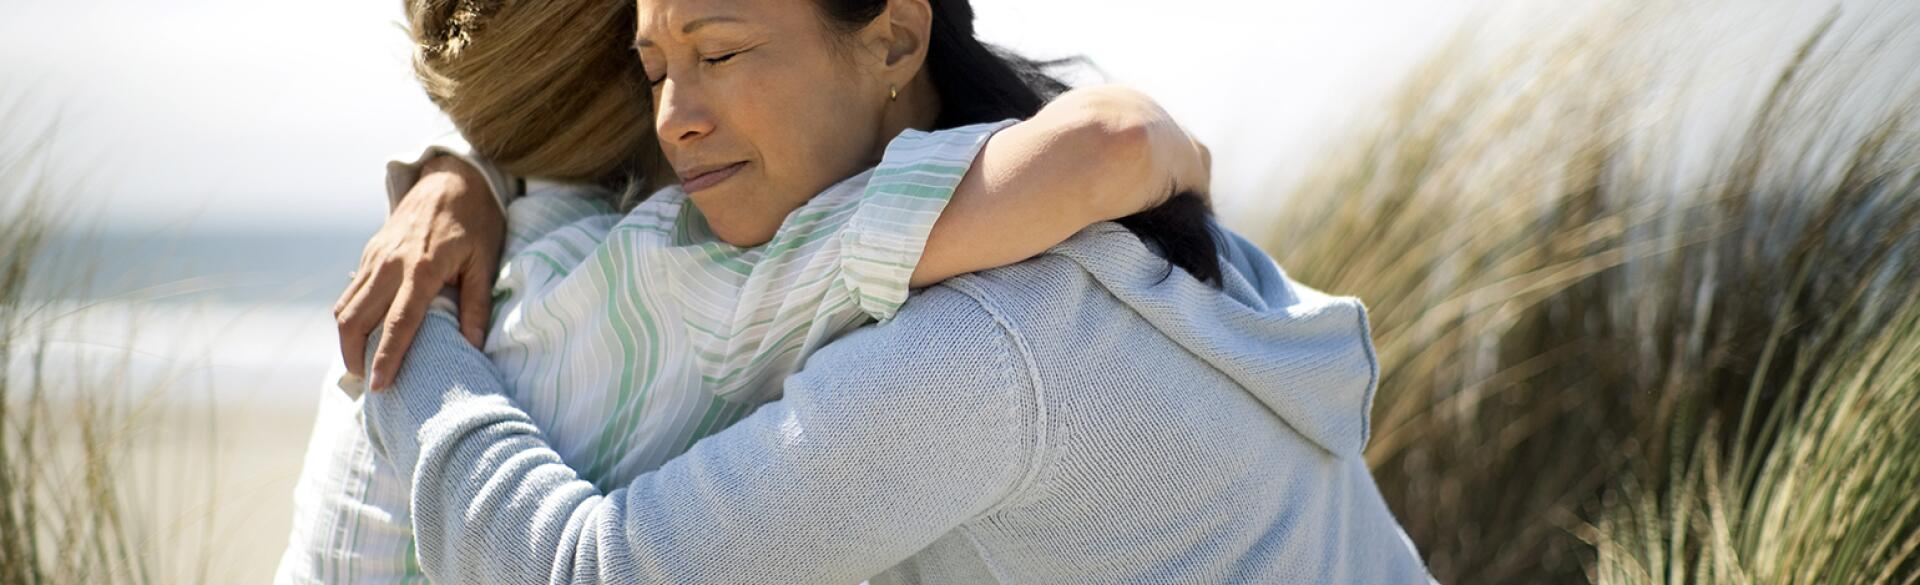 Friends hugging to mourn the loss of one of their parents.